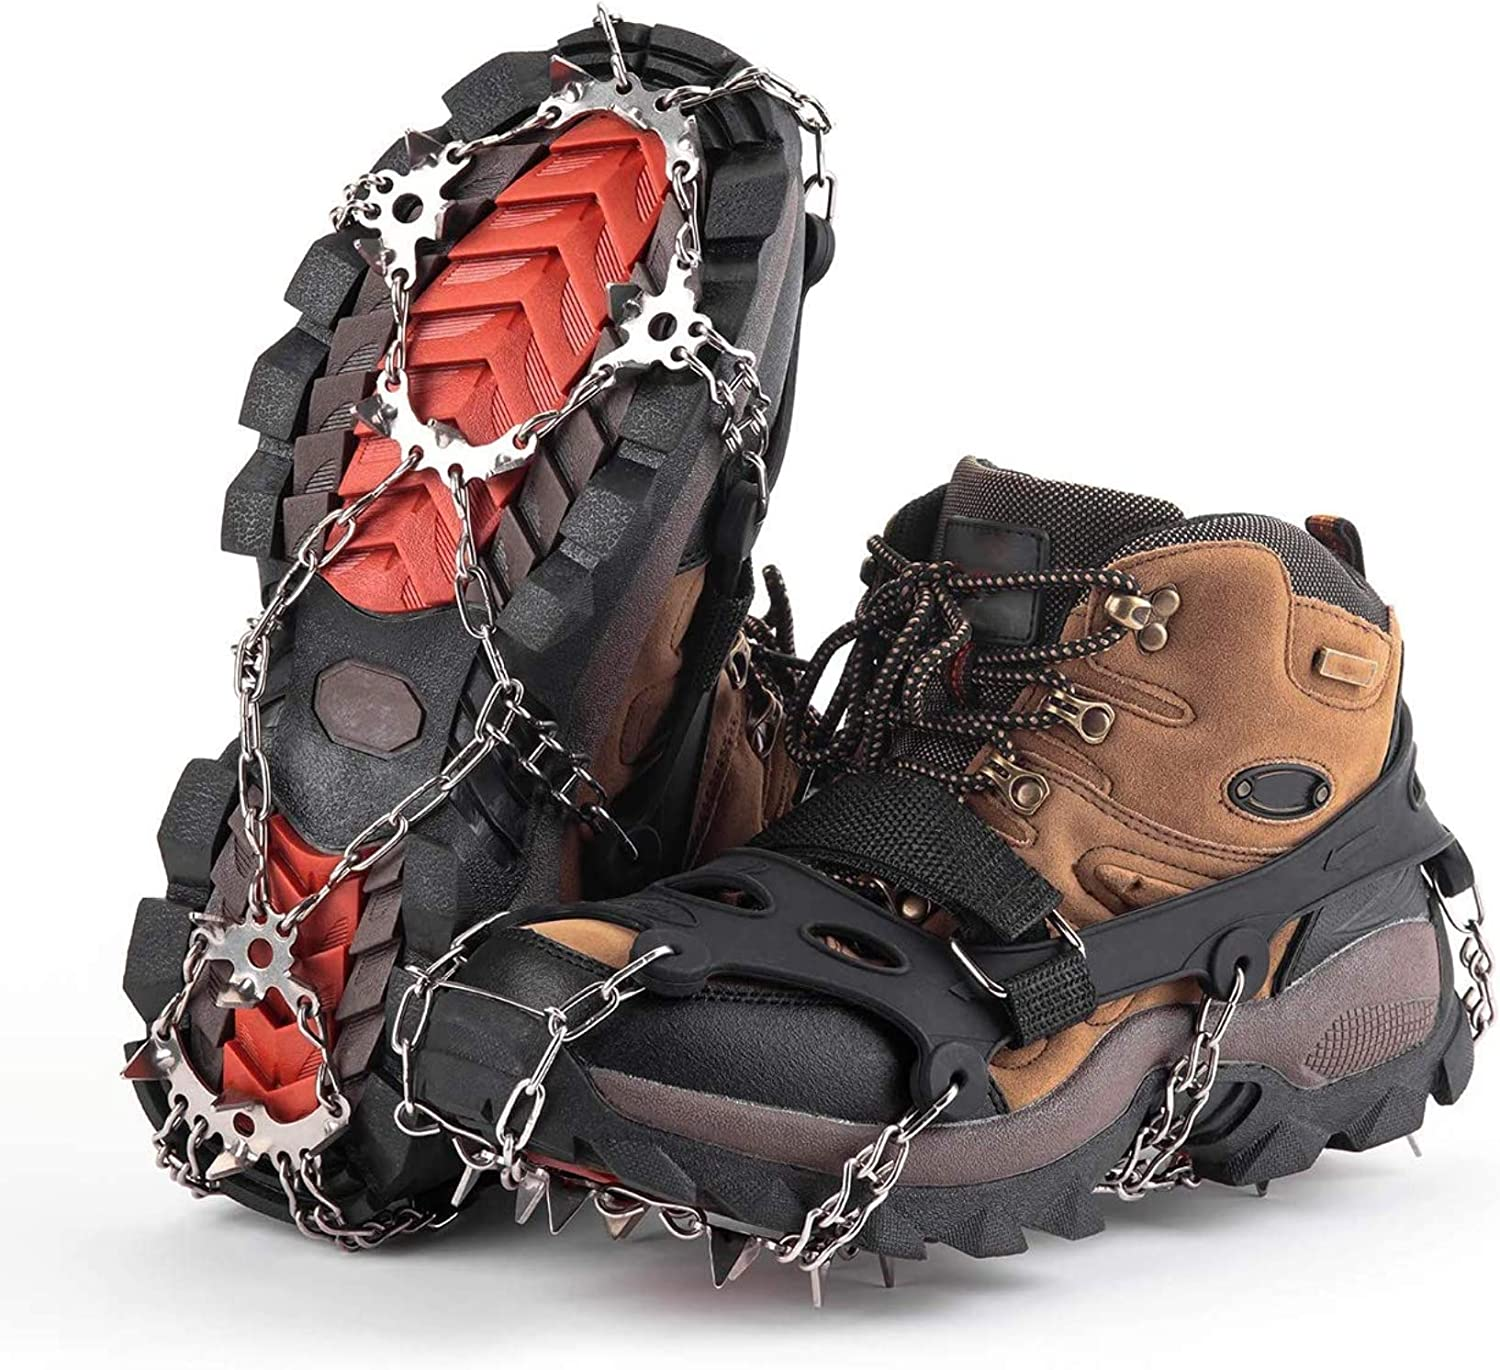 Ice Traction Cleats with 18 Shoe Spikes Anti Slip Boots Spikes Safe Protect for Walking Moutaineering Hiking Jogging Ice Snow Grips Climbing Homo Trends Crampons